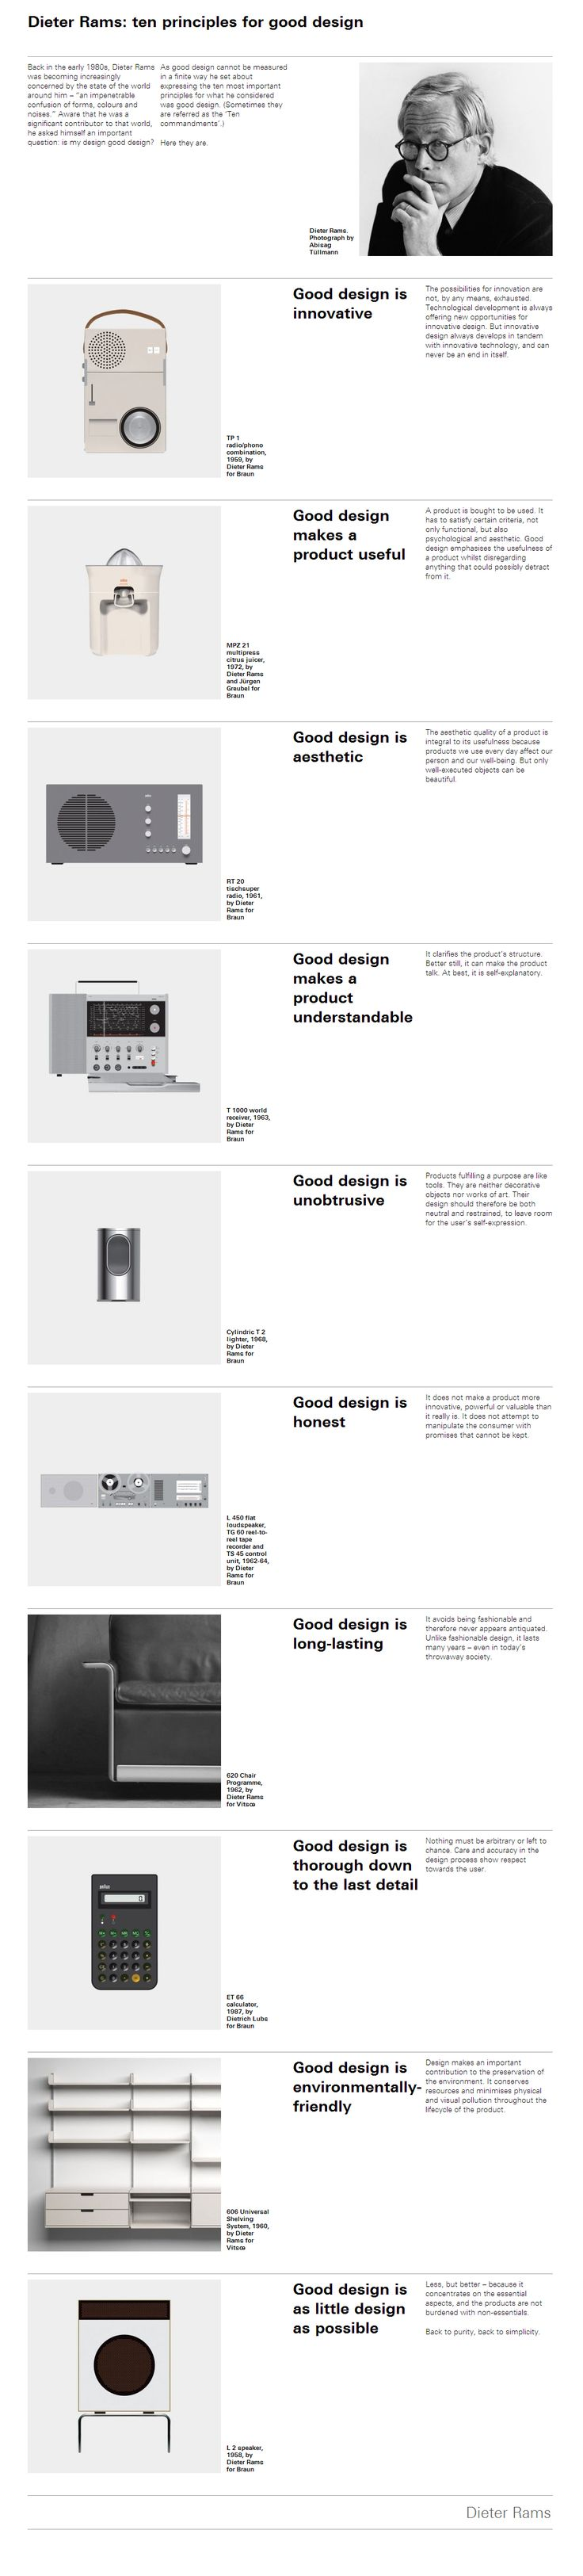 Dieter Rams 10 design principles